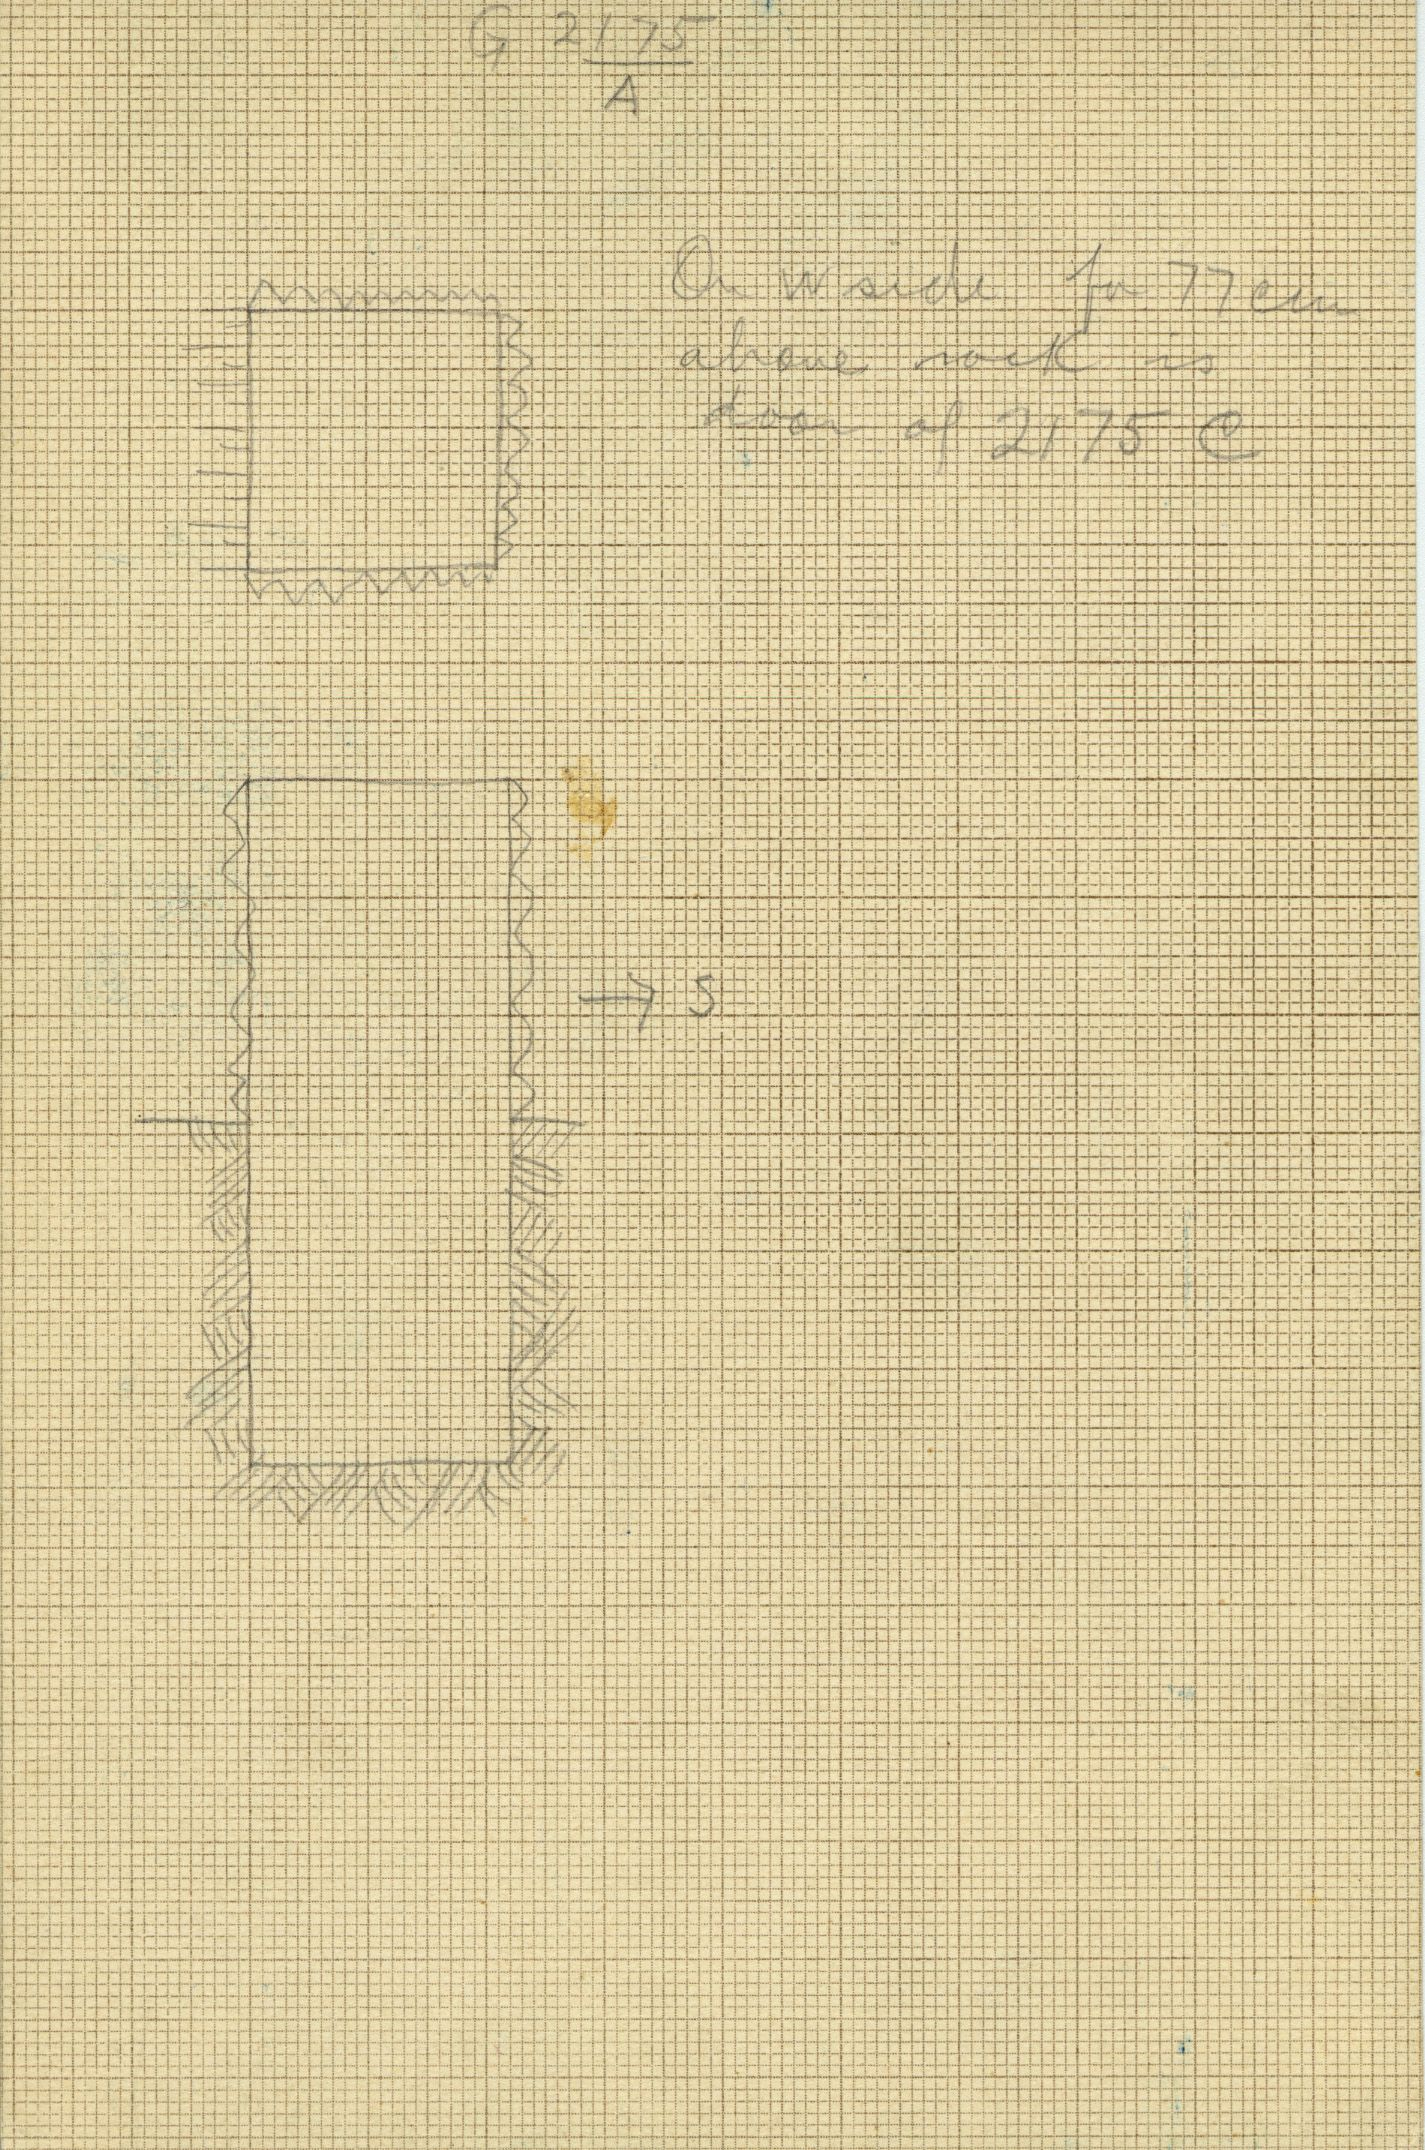 Maps and plans: G 2175, Shaft A